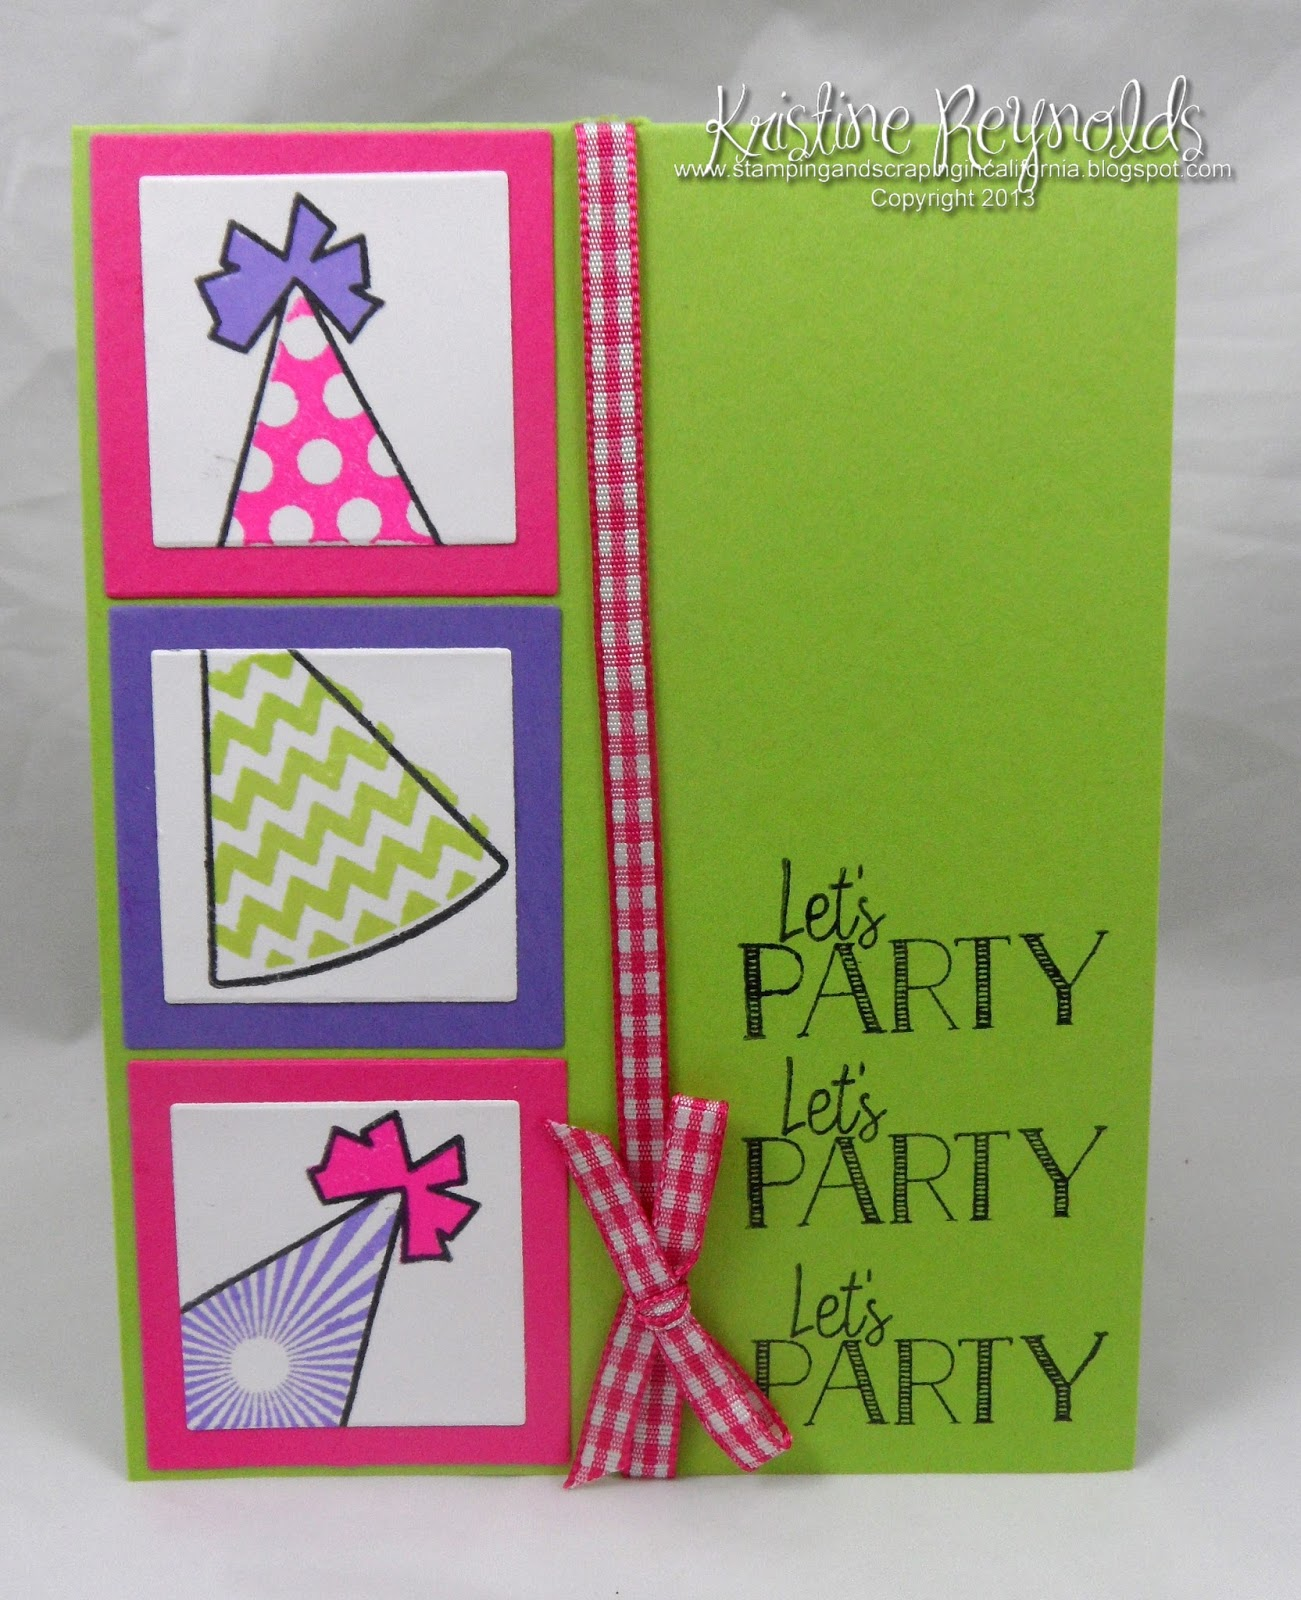 Stamping & Scrapping In California: Stamps4partyhats